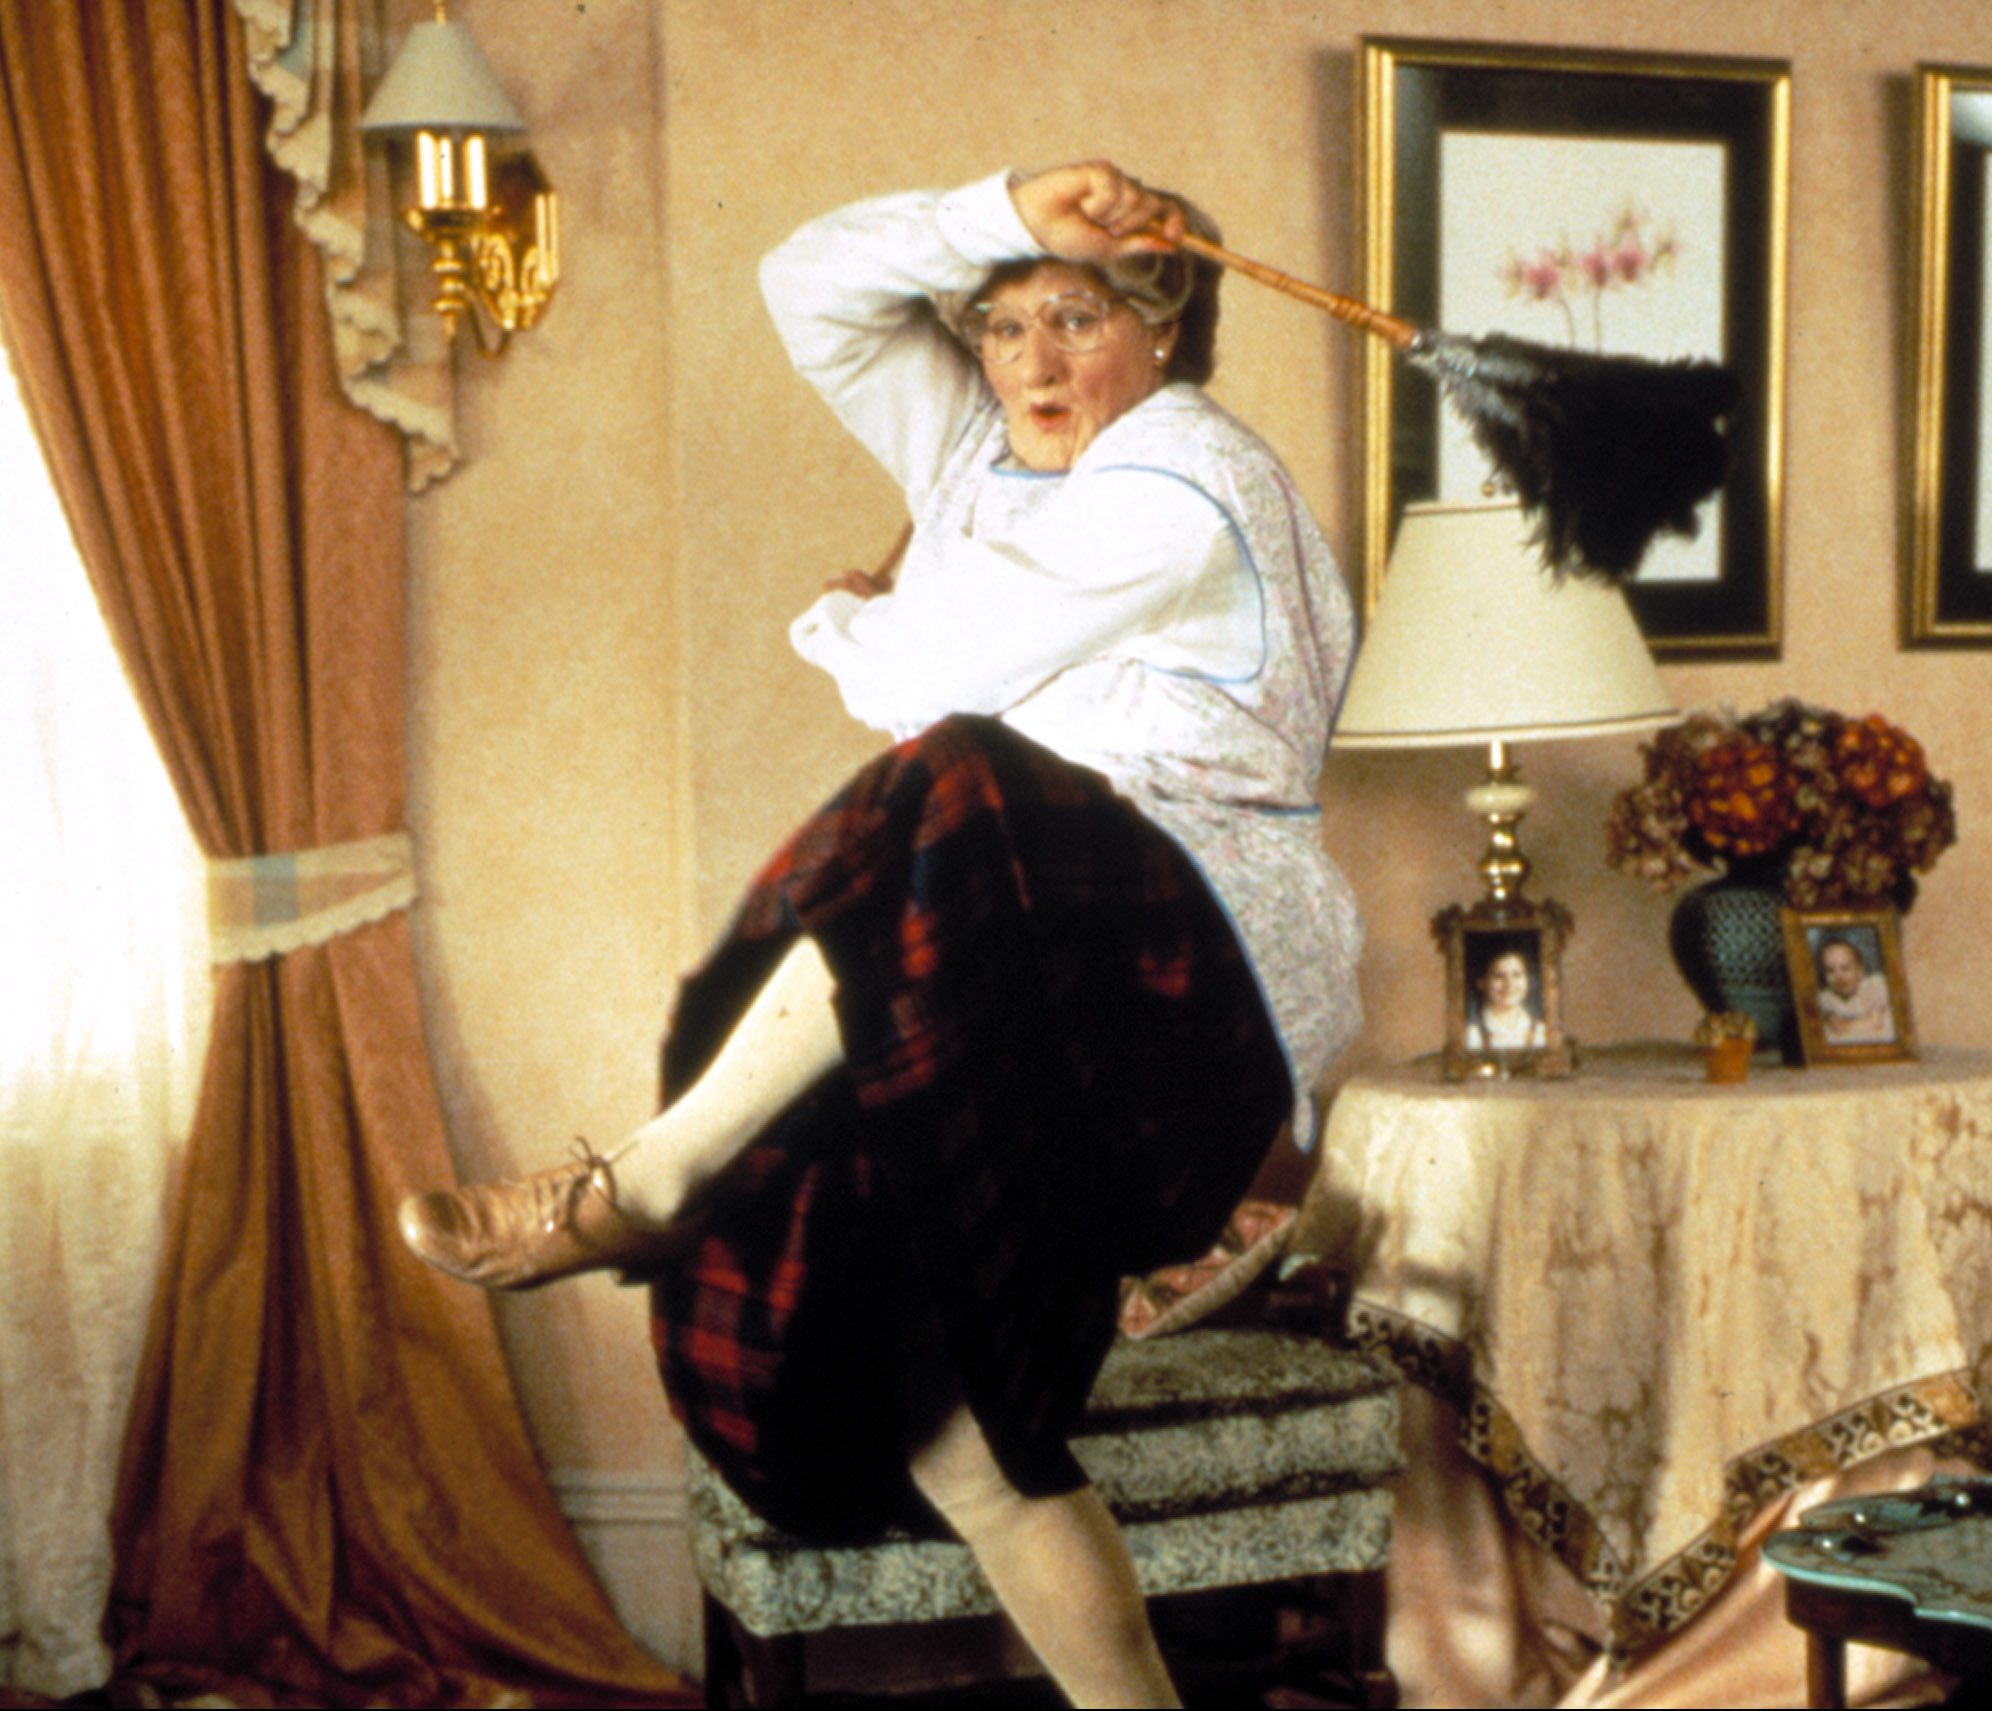 MSDMRDO EC005 e1625236630608 25 Things You Never Knew About Mrs. Doubtfire